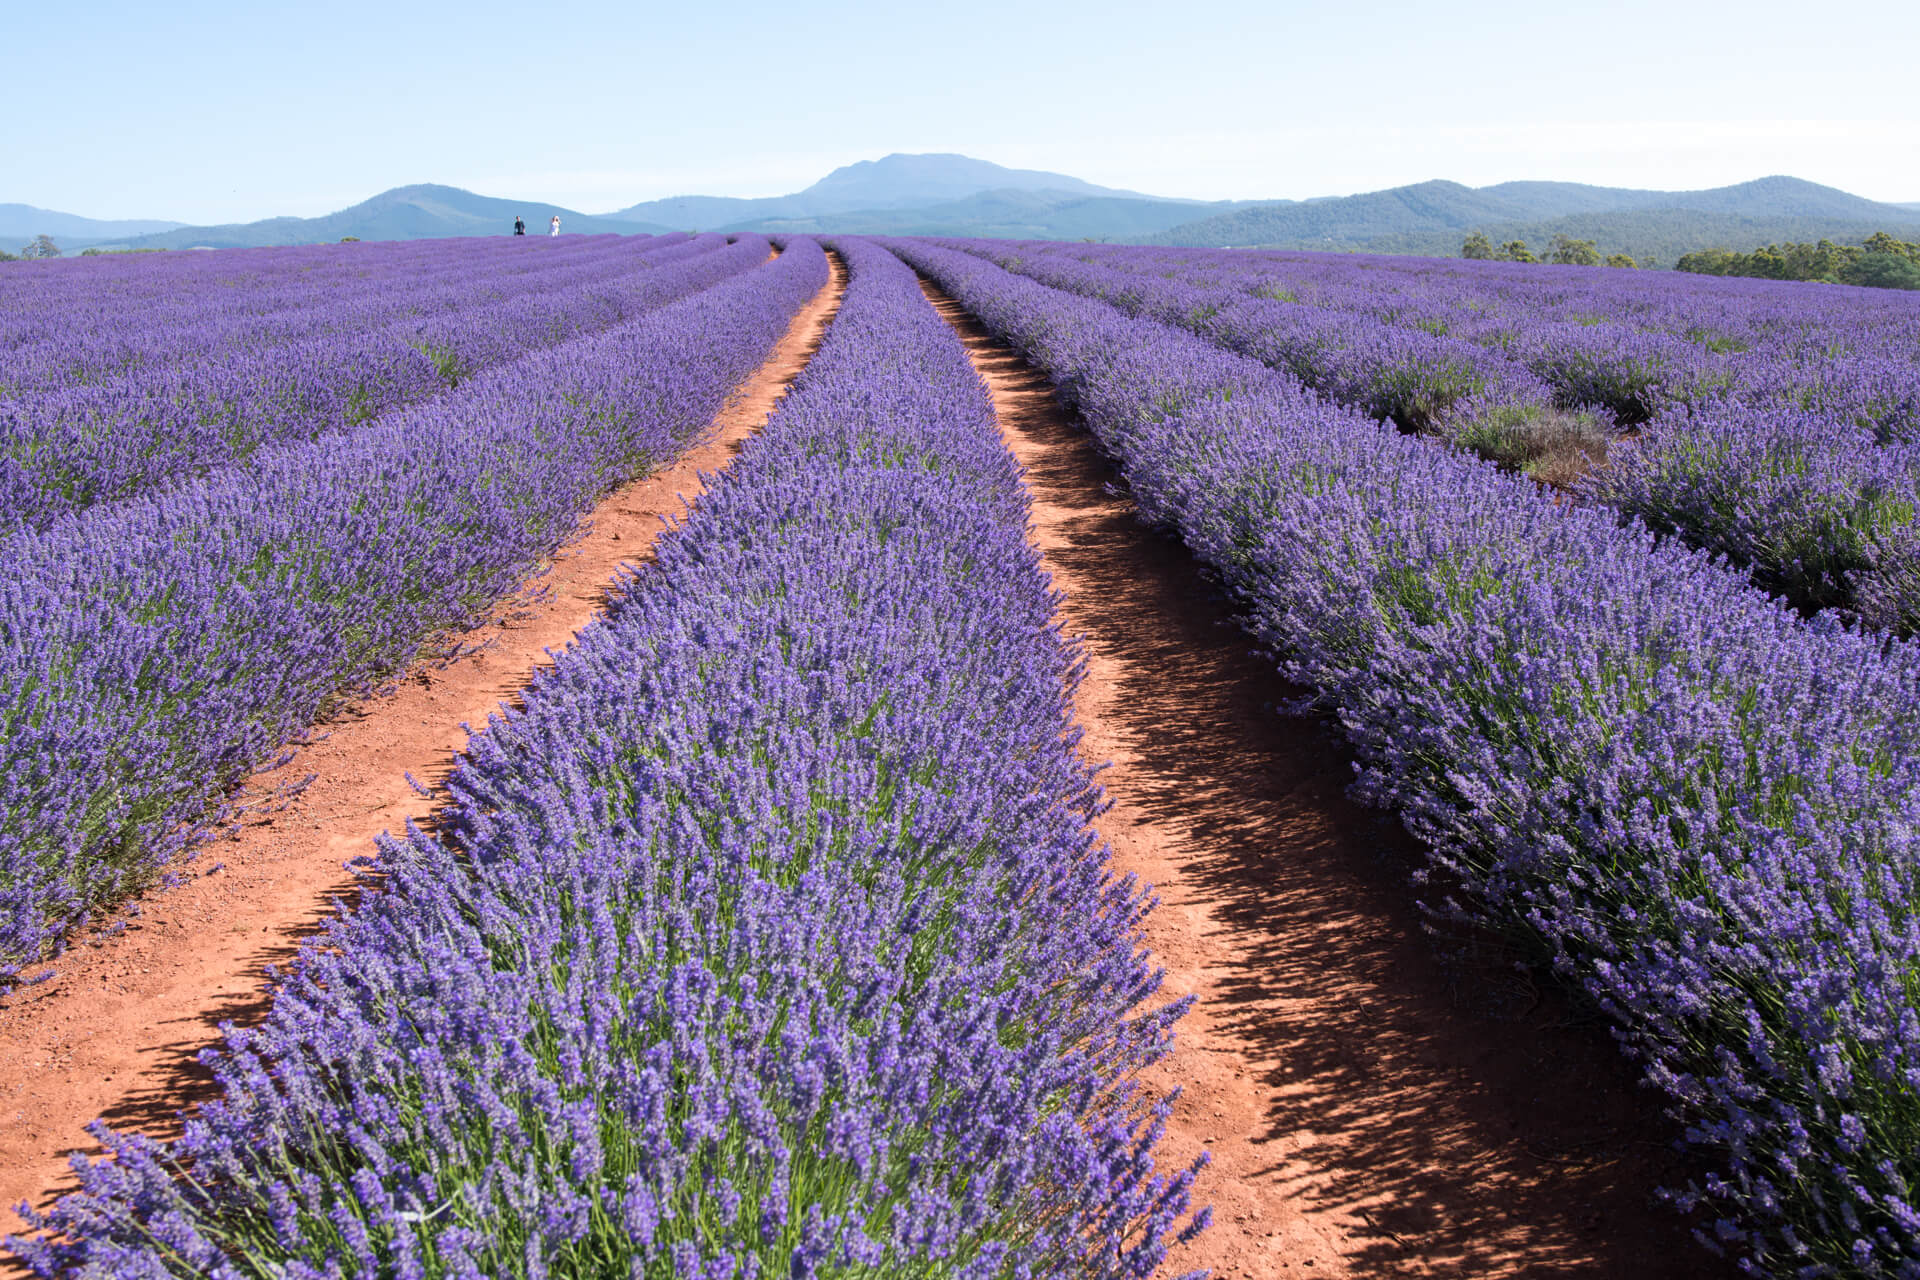 Tour Tasmania Part 4 - Bridestowe Lavender